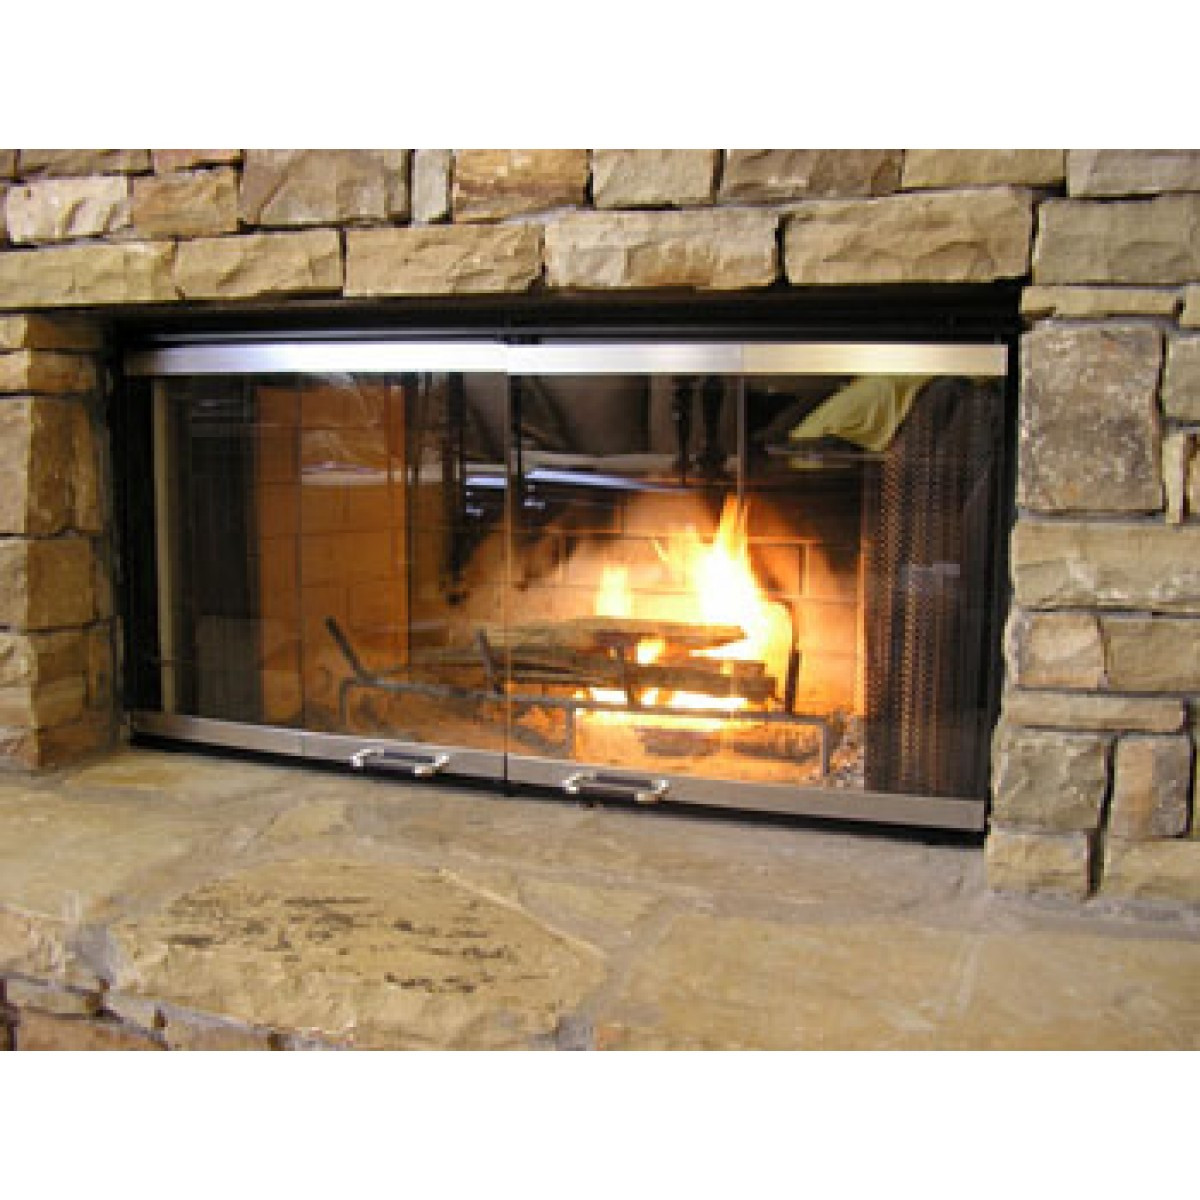 Best ideas about Glass Doors For Fireplace . Save or Pin Replacement Glass Doors Heatilator Fireplace Doors Now.